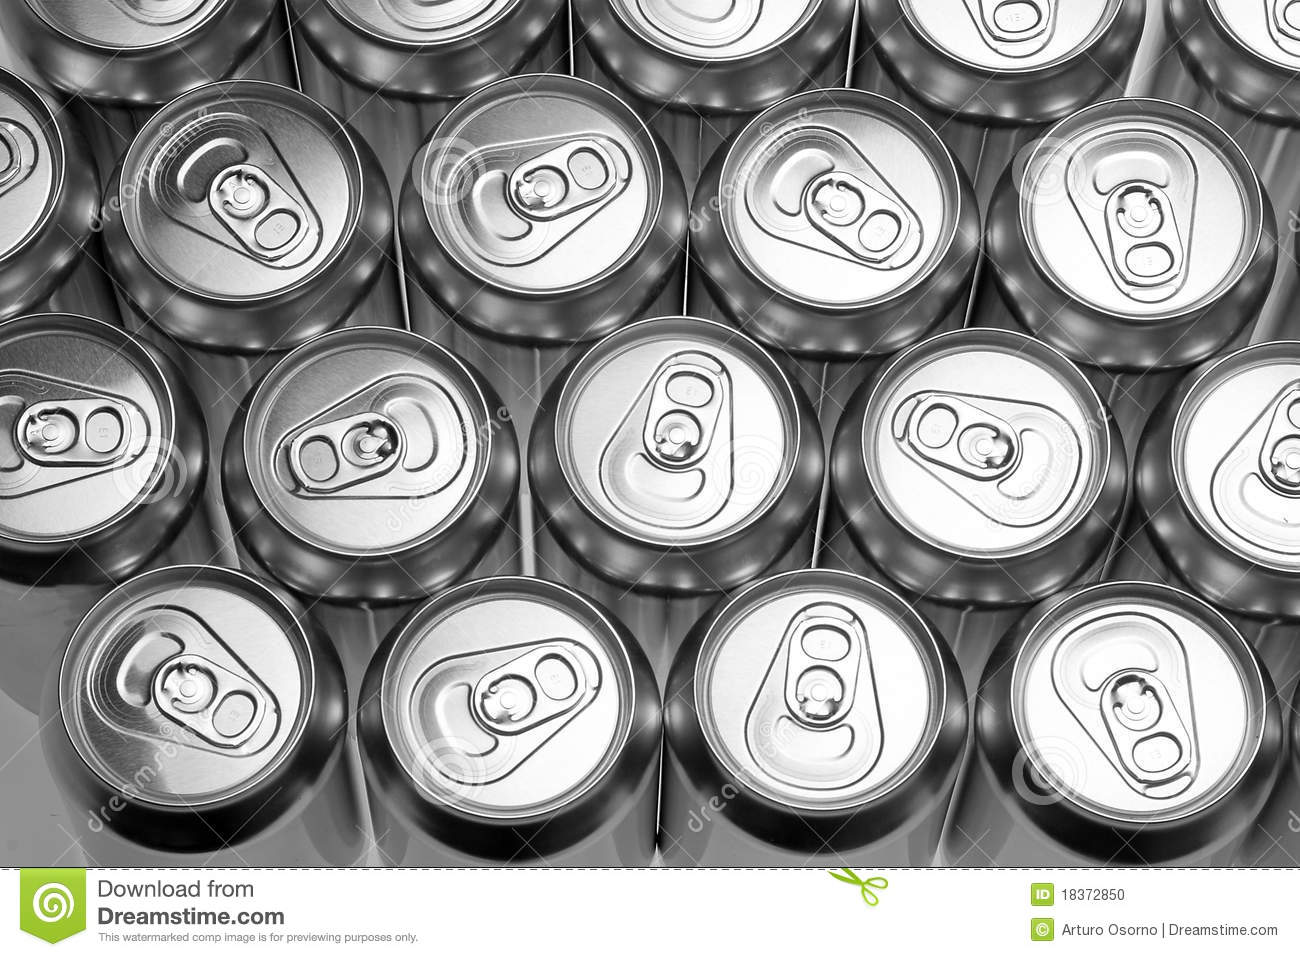 Aluminium Cans Stock Photo - Image: 18372850